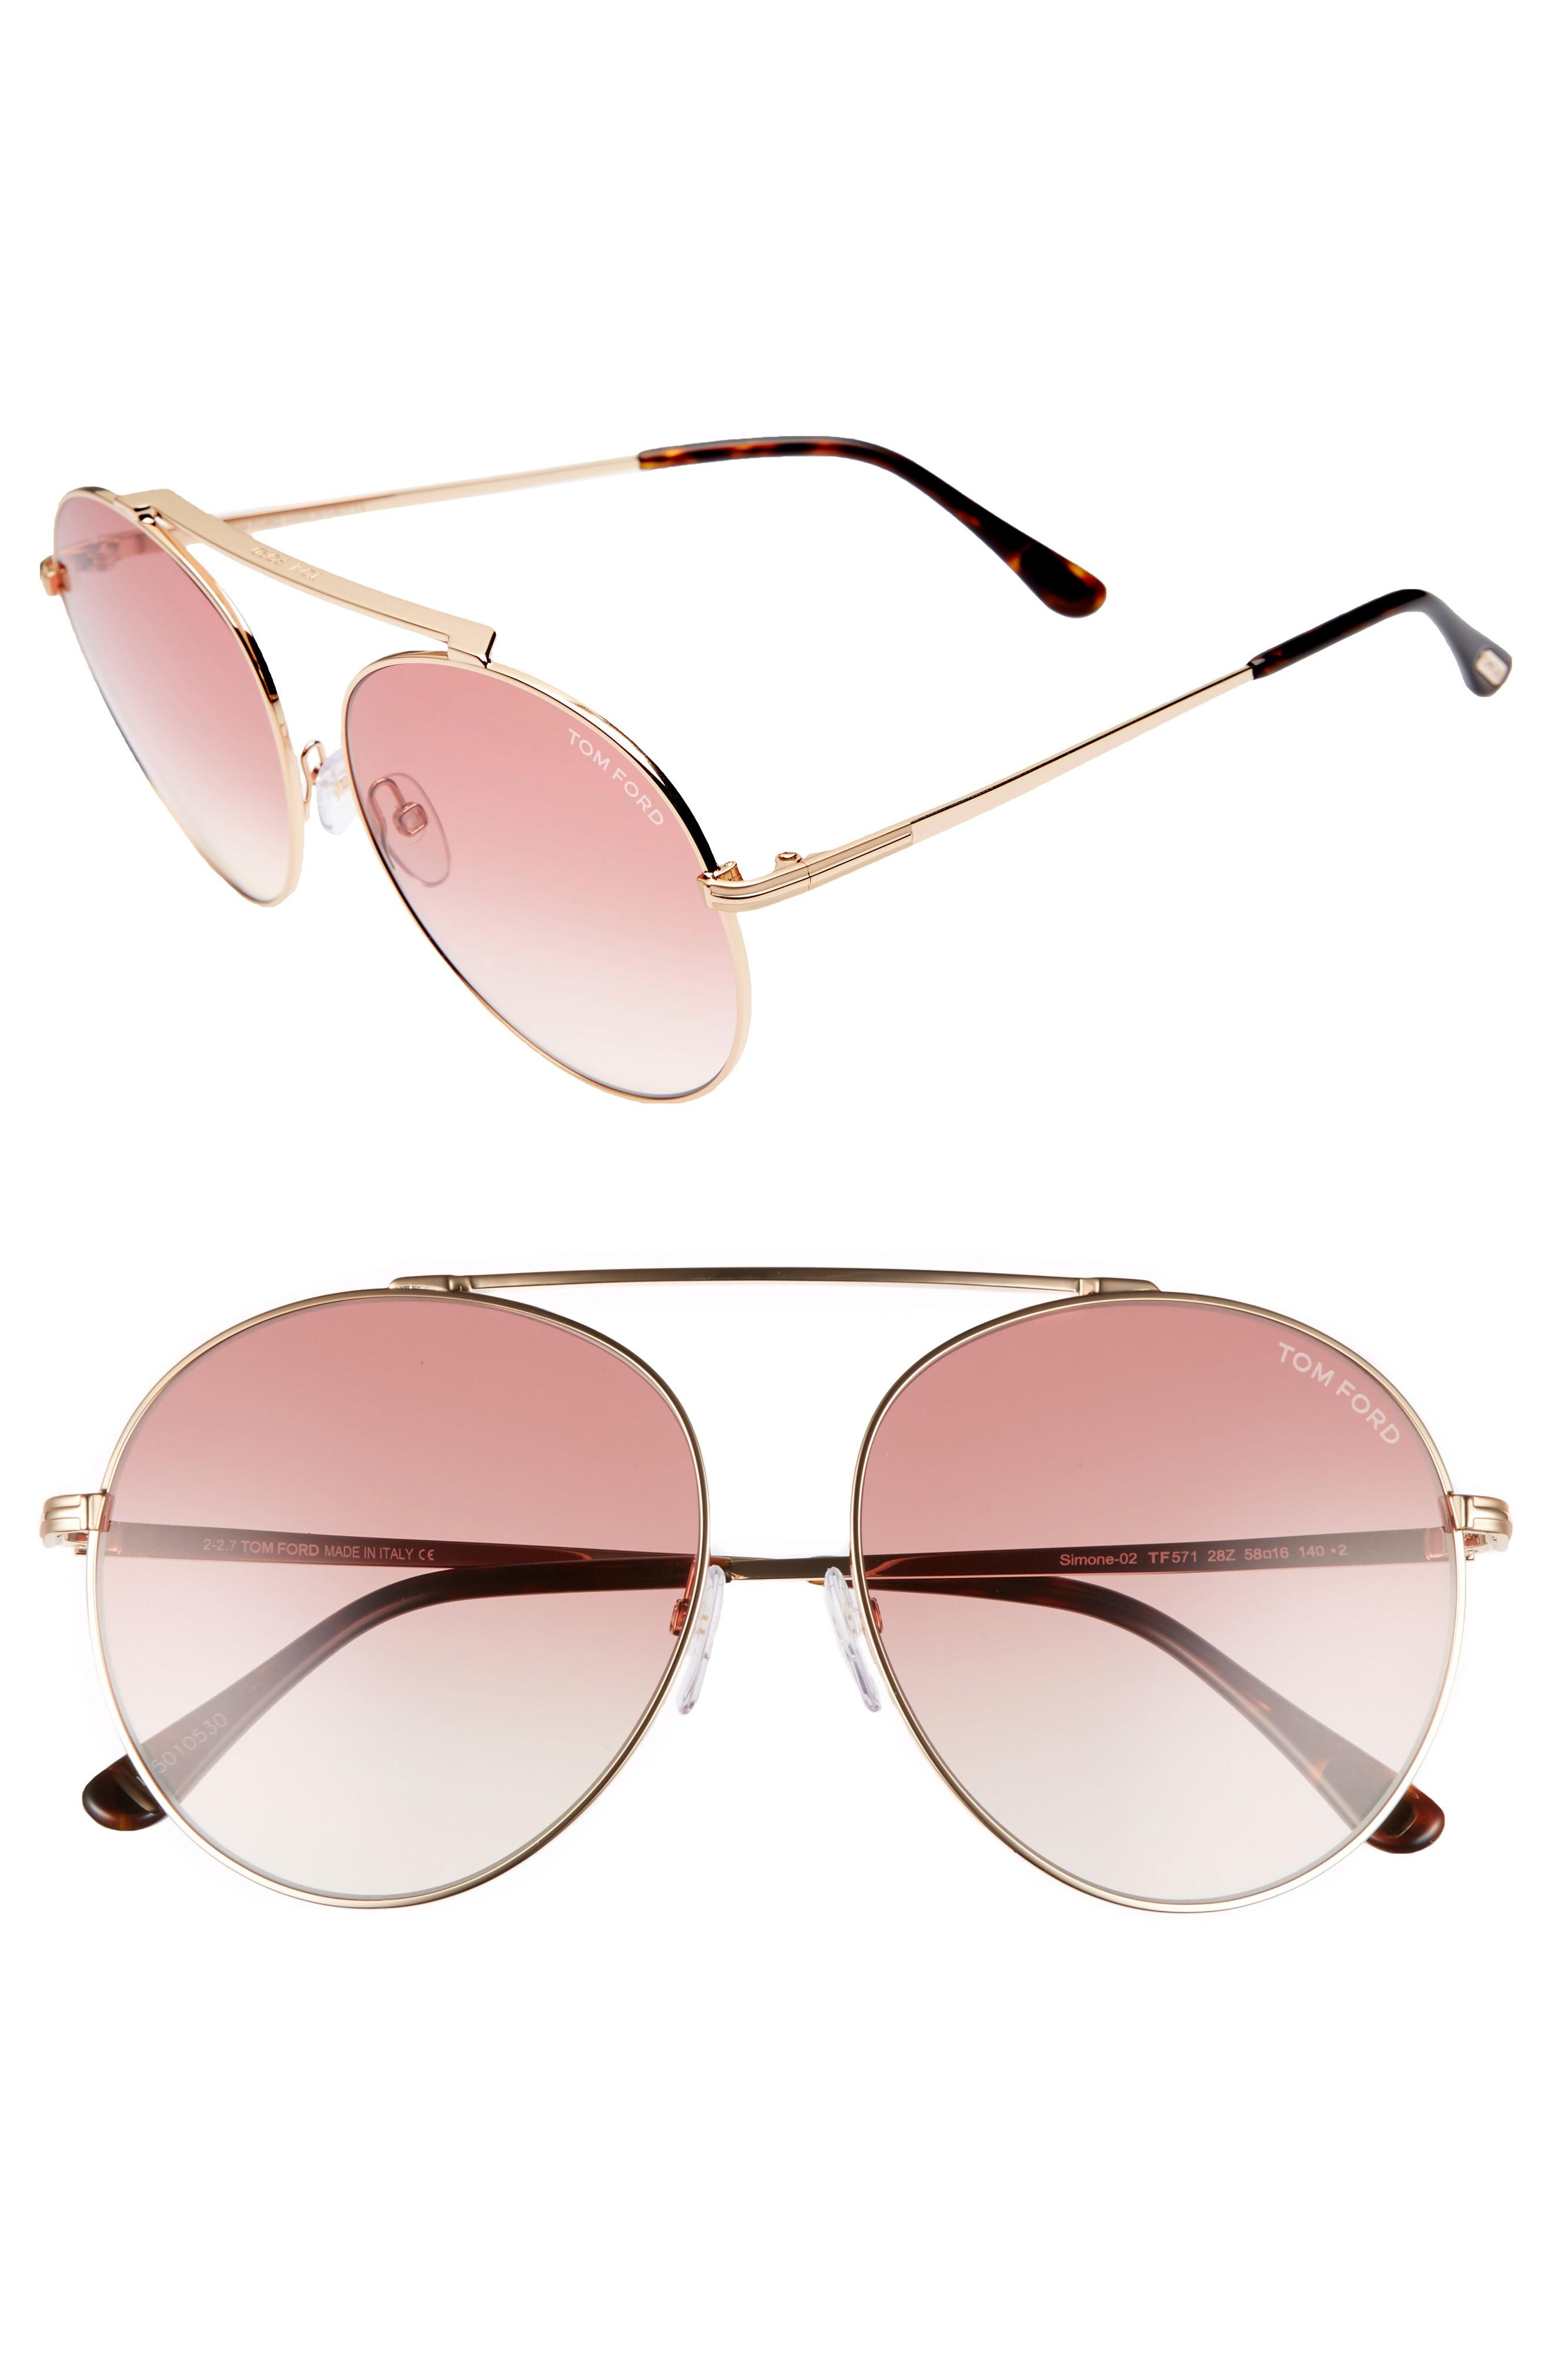 3adf33f13e102 Tom Ford Simone 58Mm Gradient Mirrored Round Sunglasses - Rose Gold  Rose   Sand